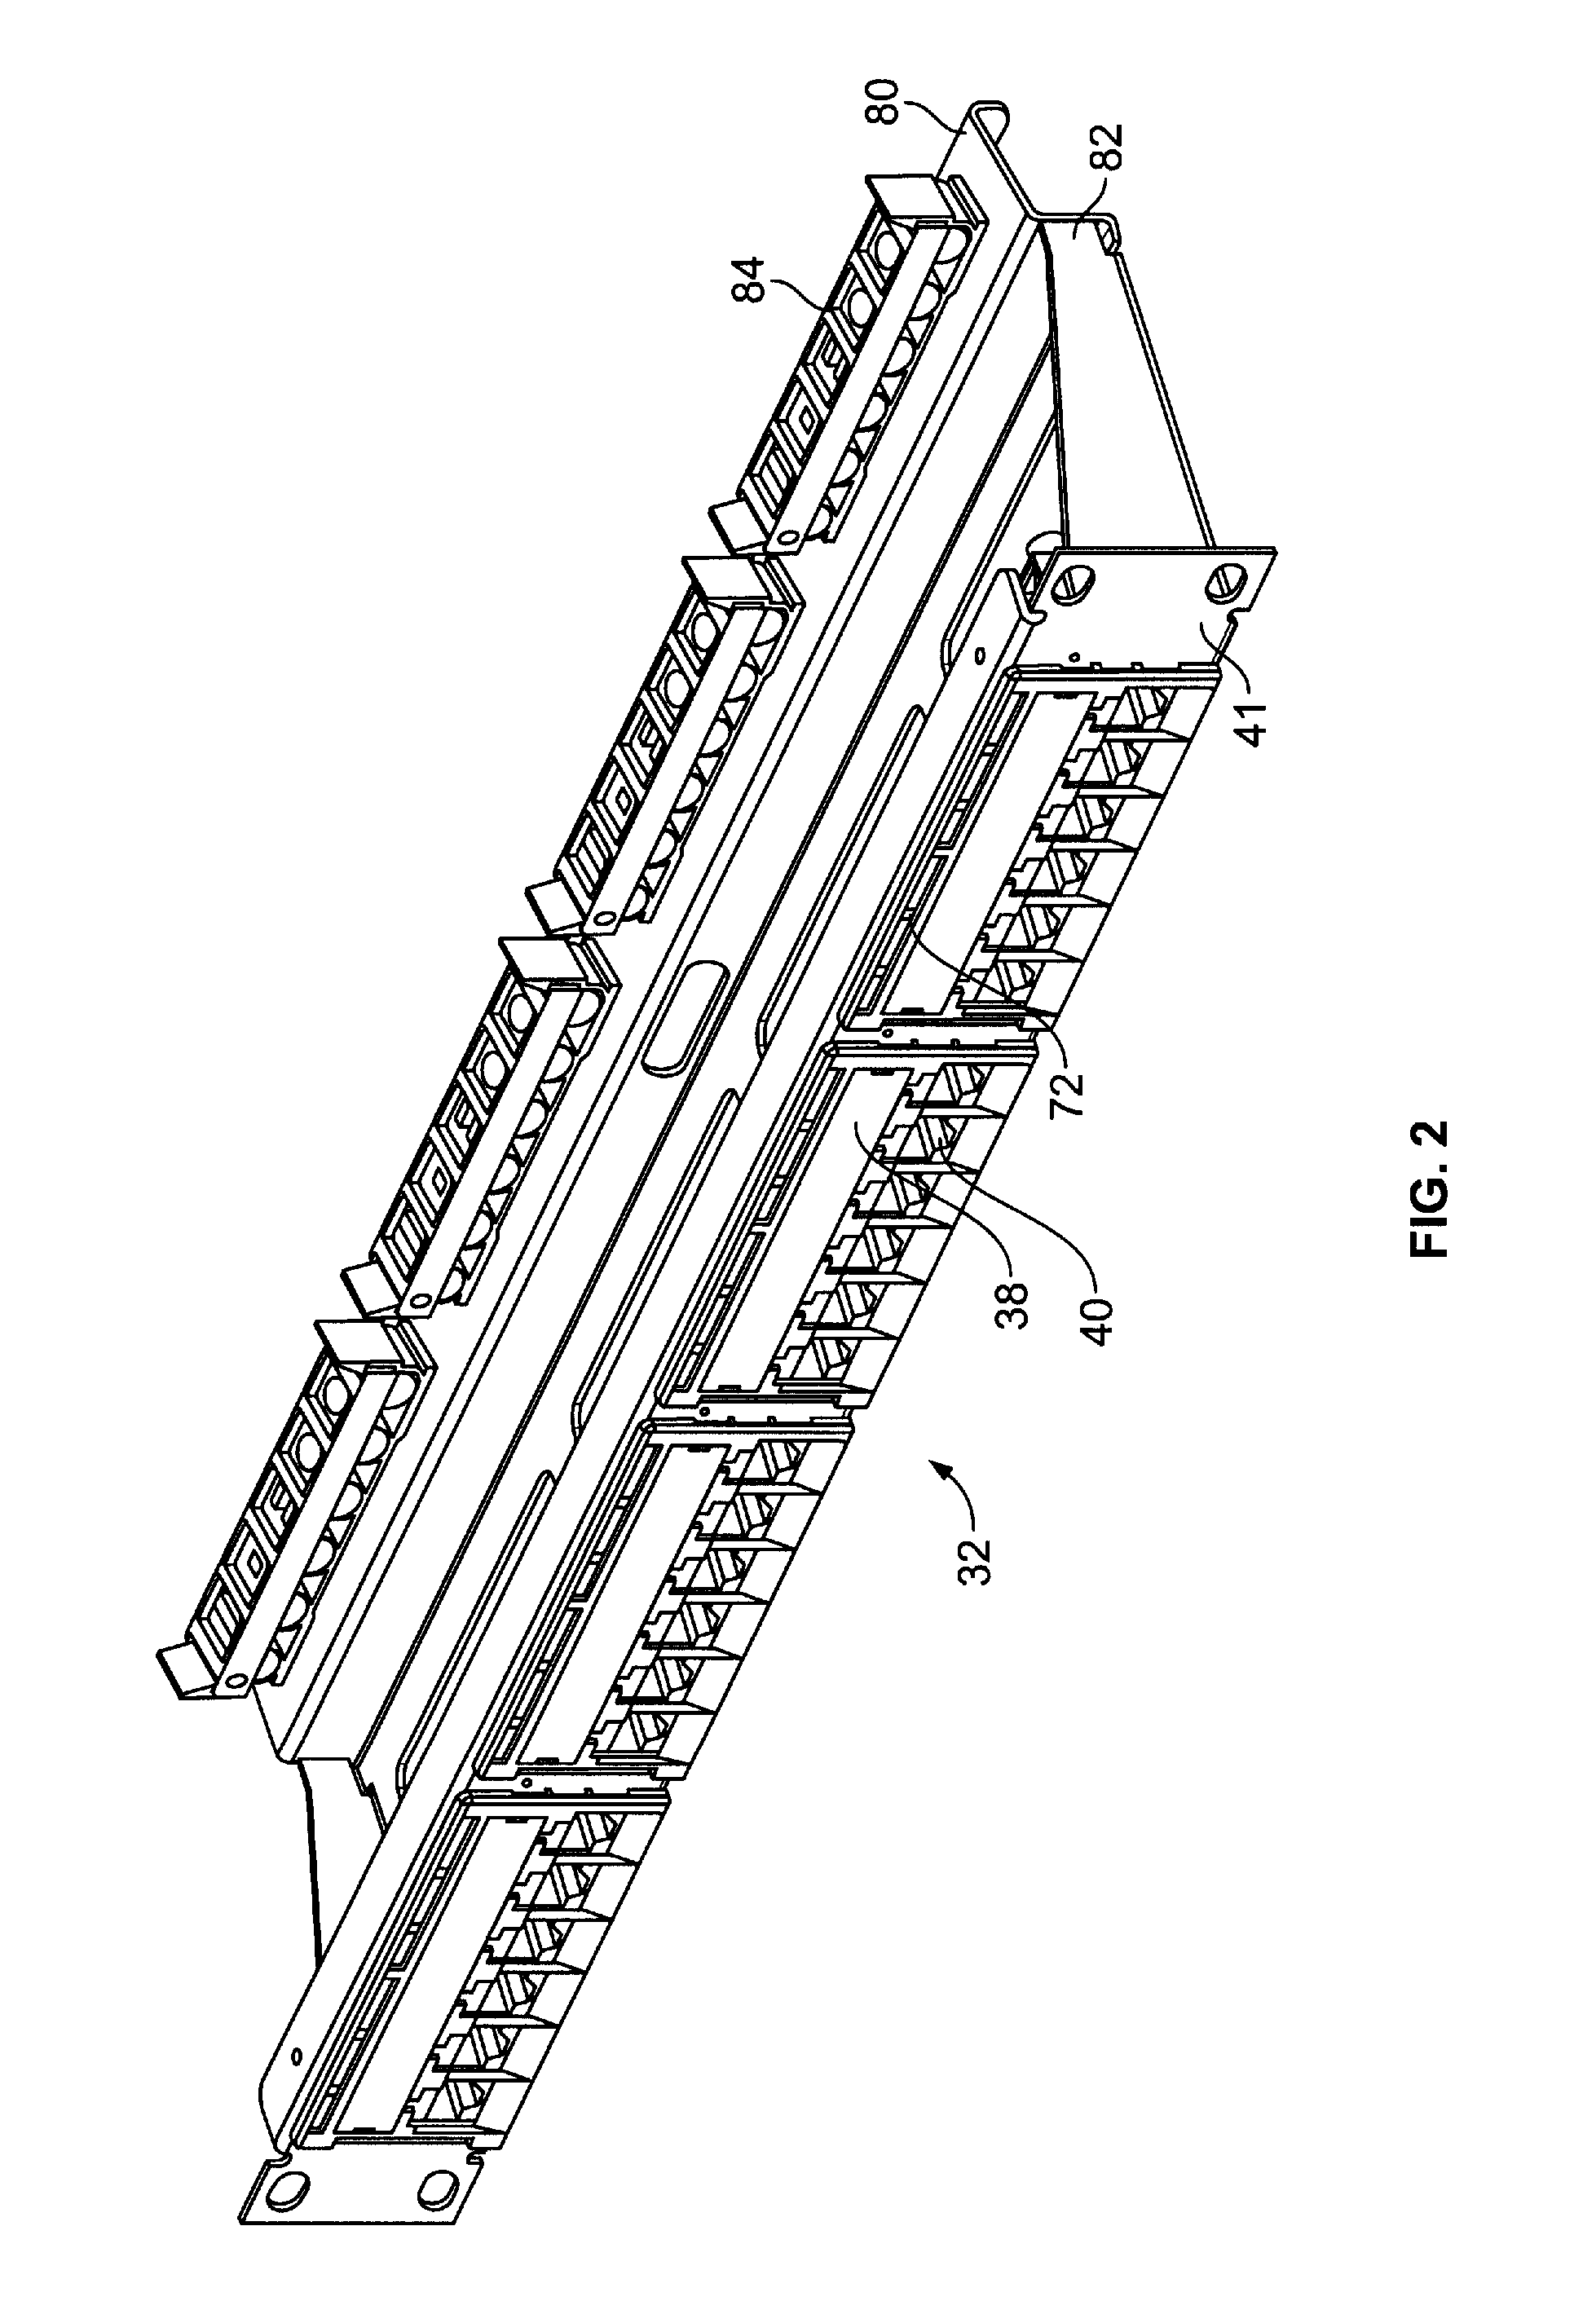 patent us7686643 - method and apparatus for visual indication in cable network systems